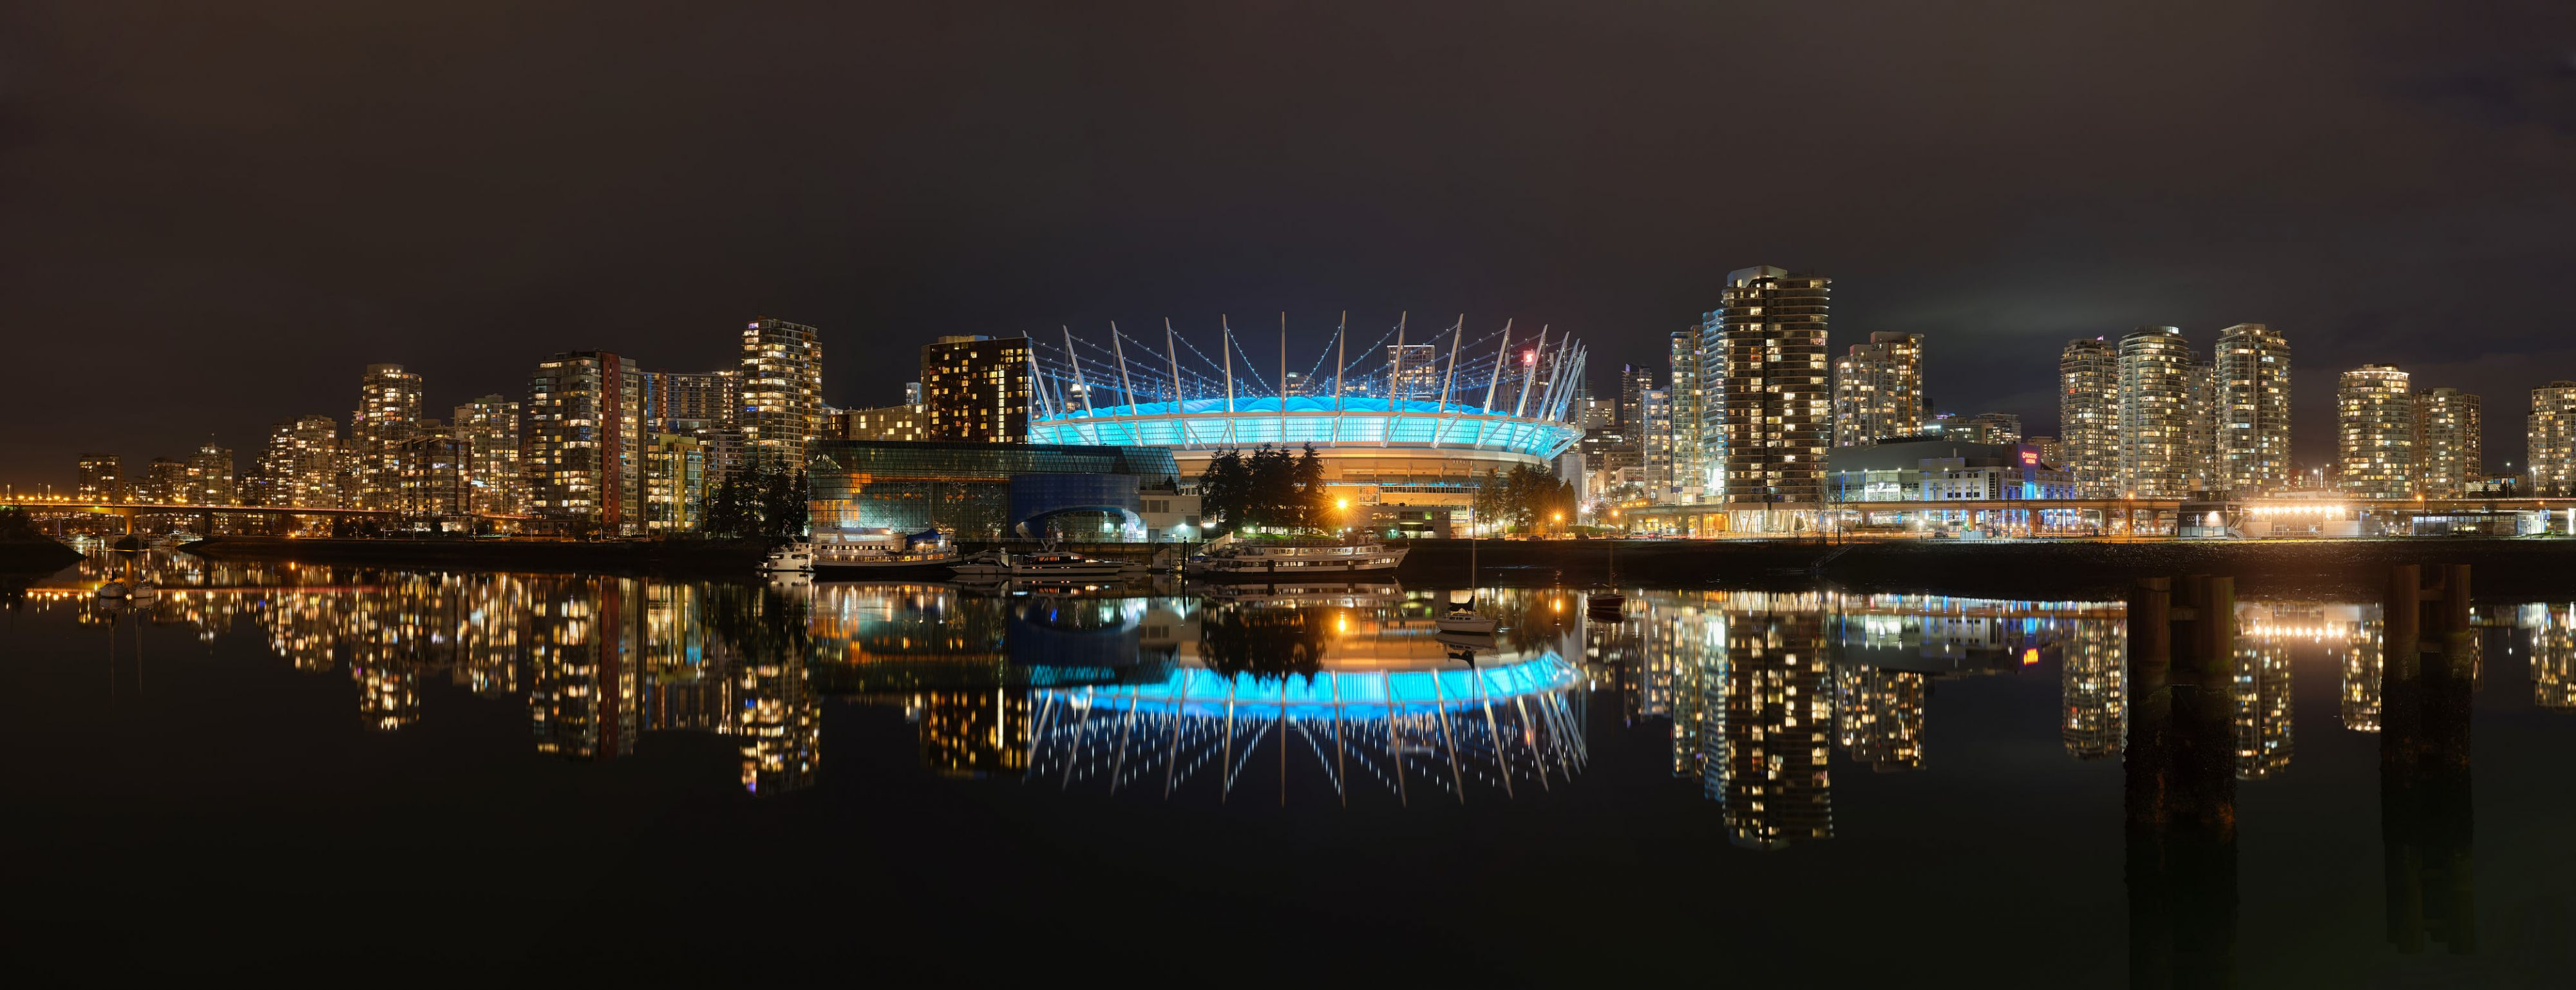 B.C. Place and Vancouver night skyline